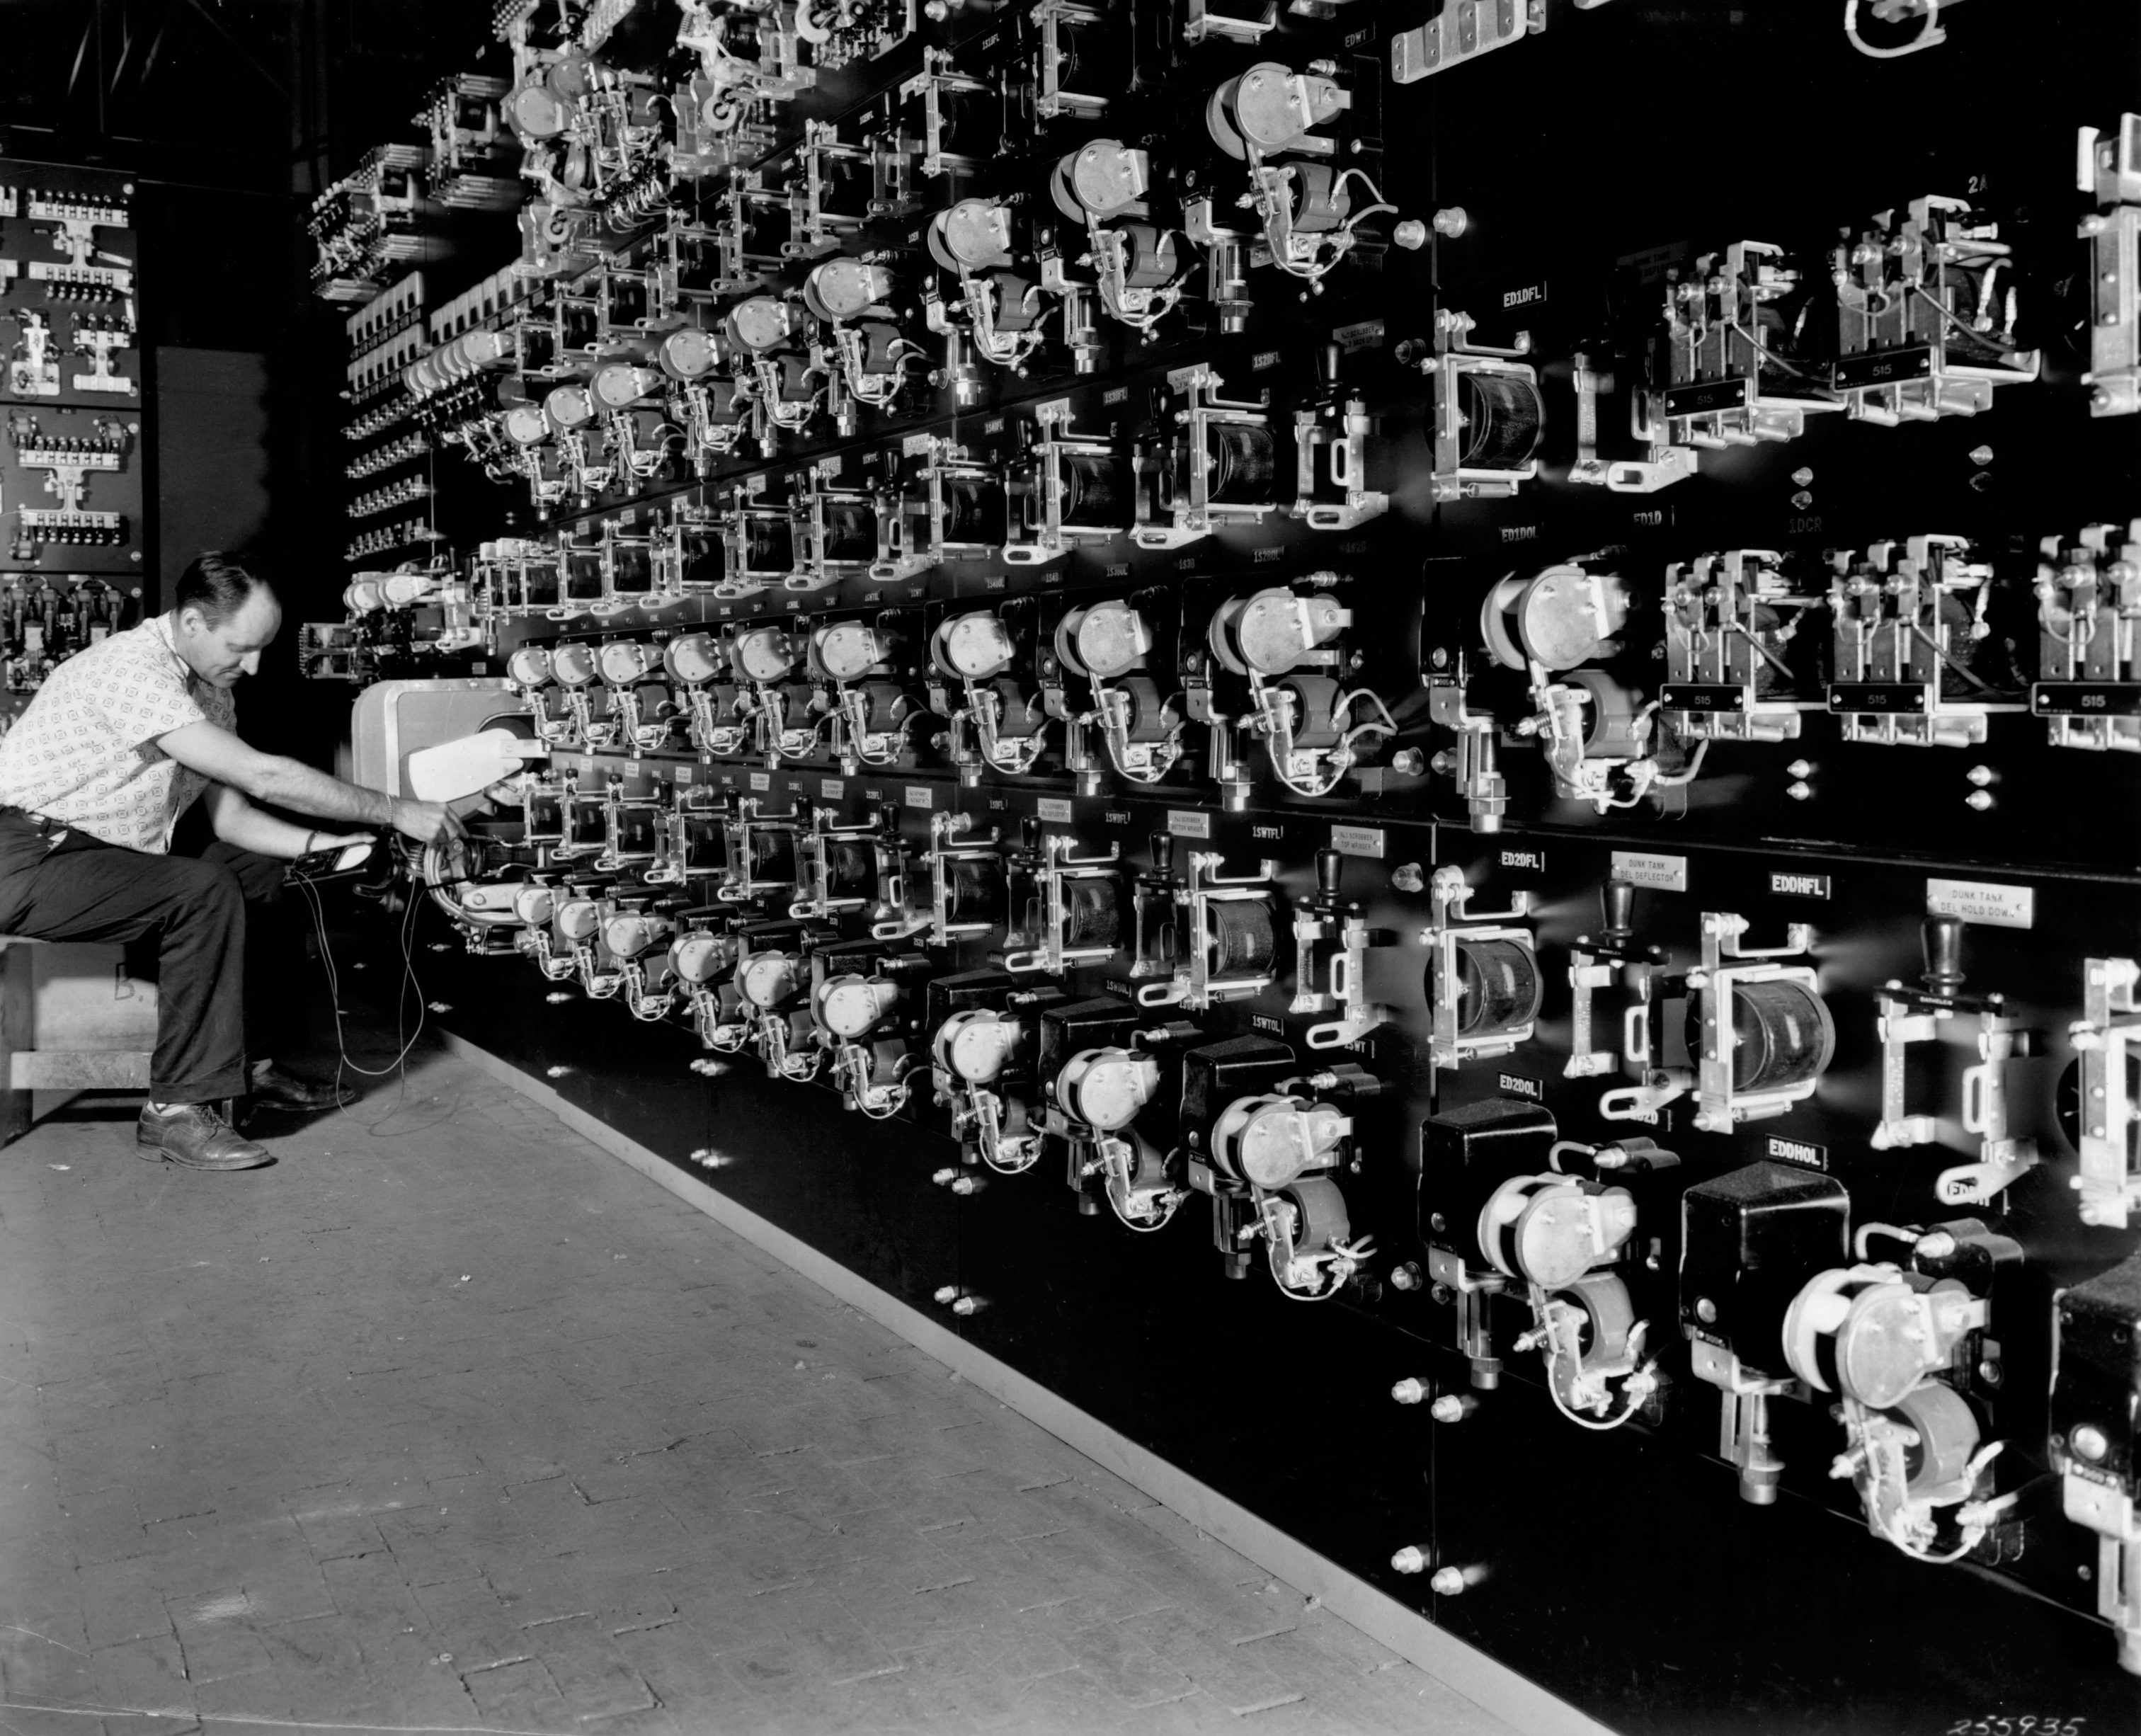 A Cutler-Hammer employee tests electrical controls in 1963.